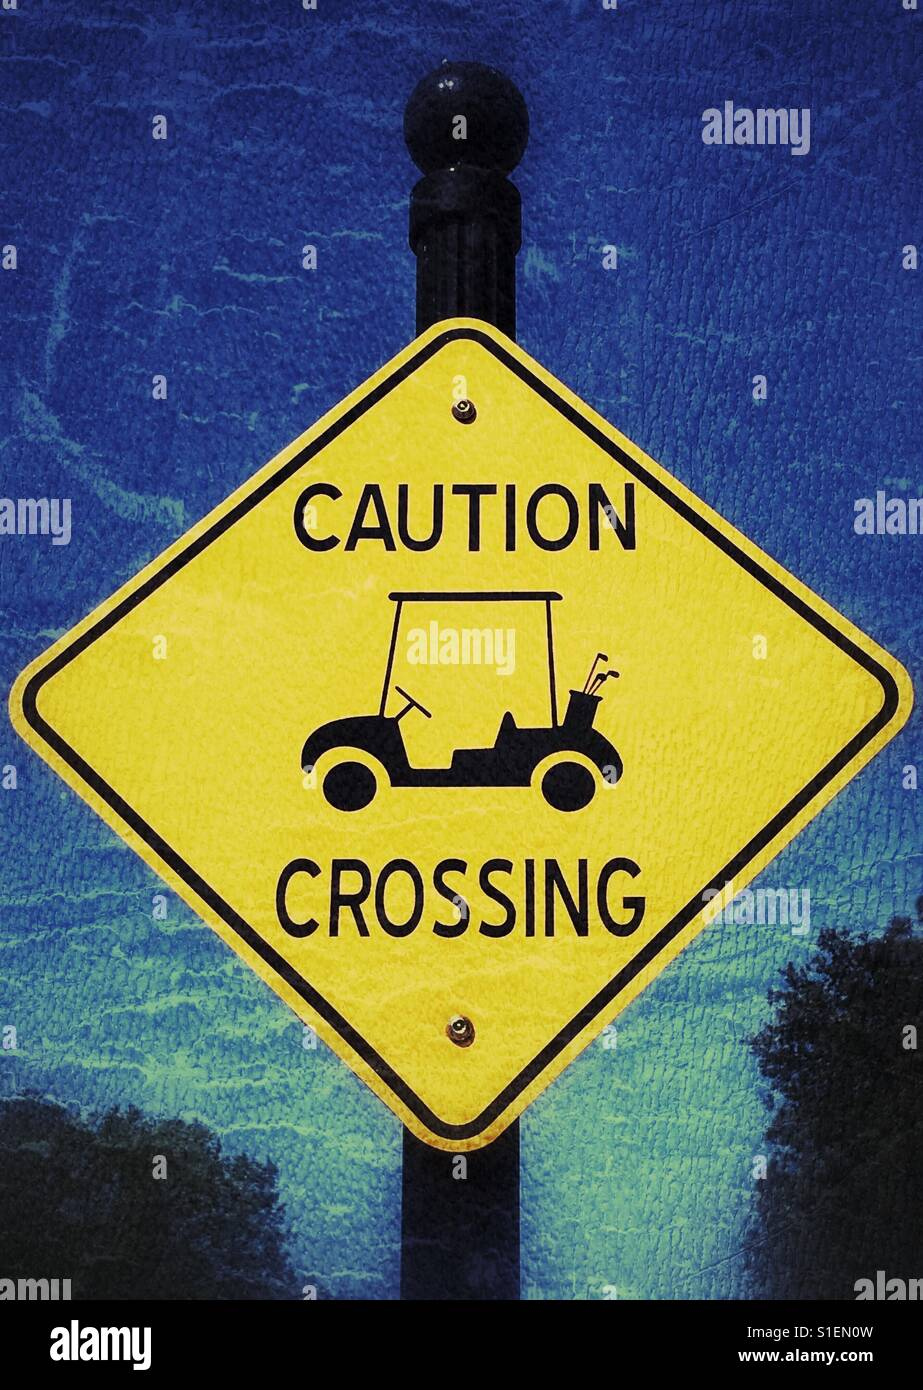 Golf cart crossing sign - Stock Image